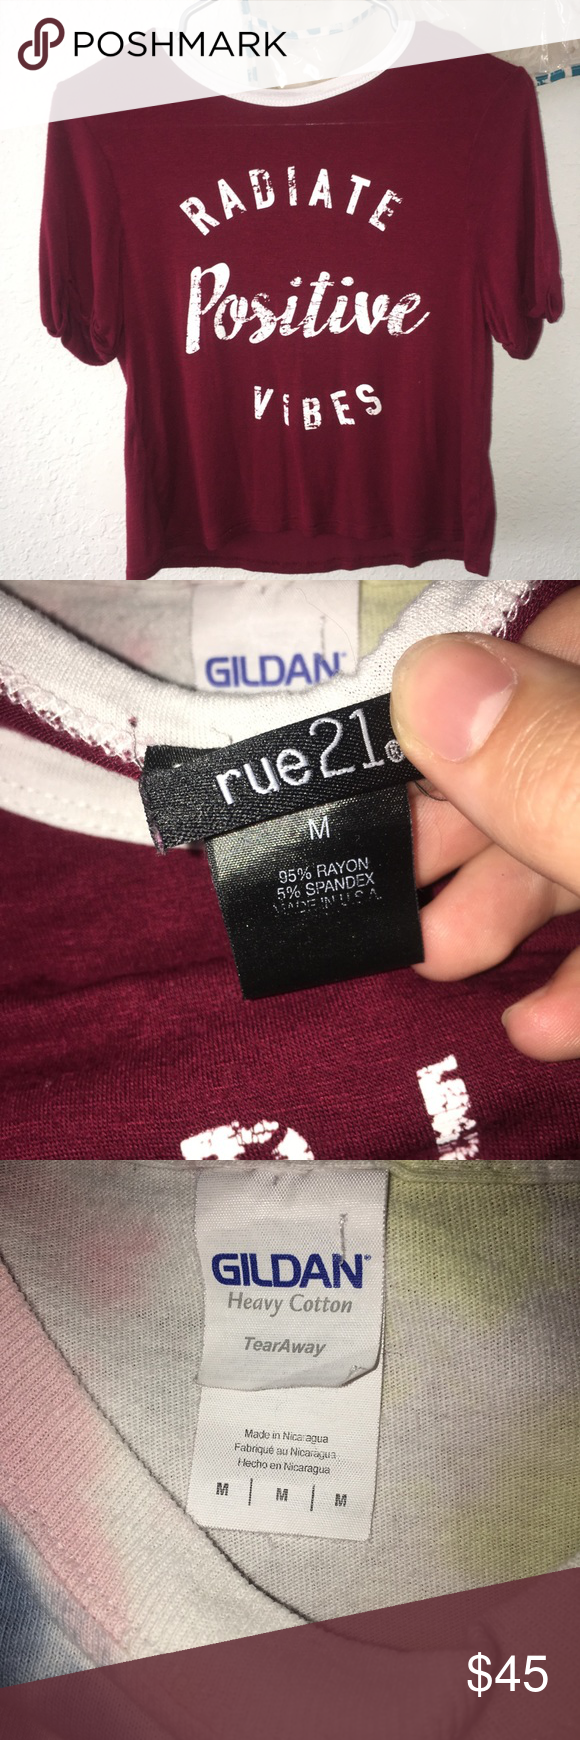 Name Brand Clothing Clothing brand, Maroon shirts, Grey